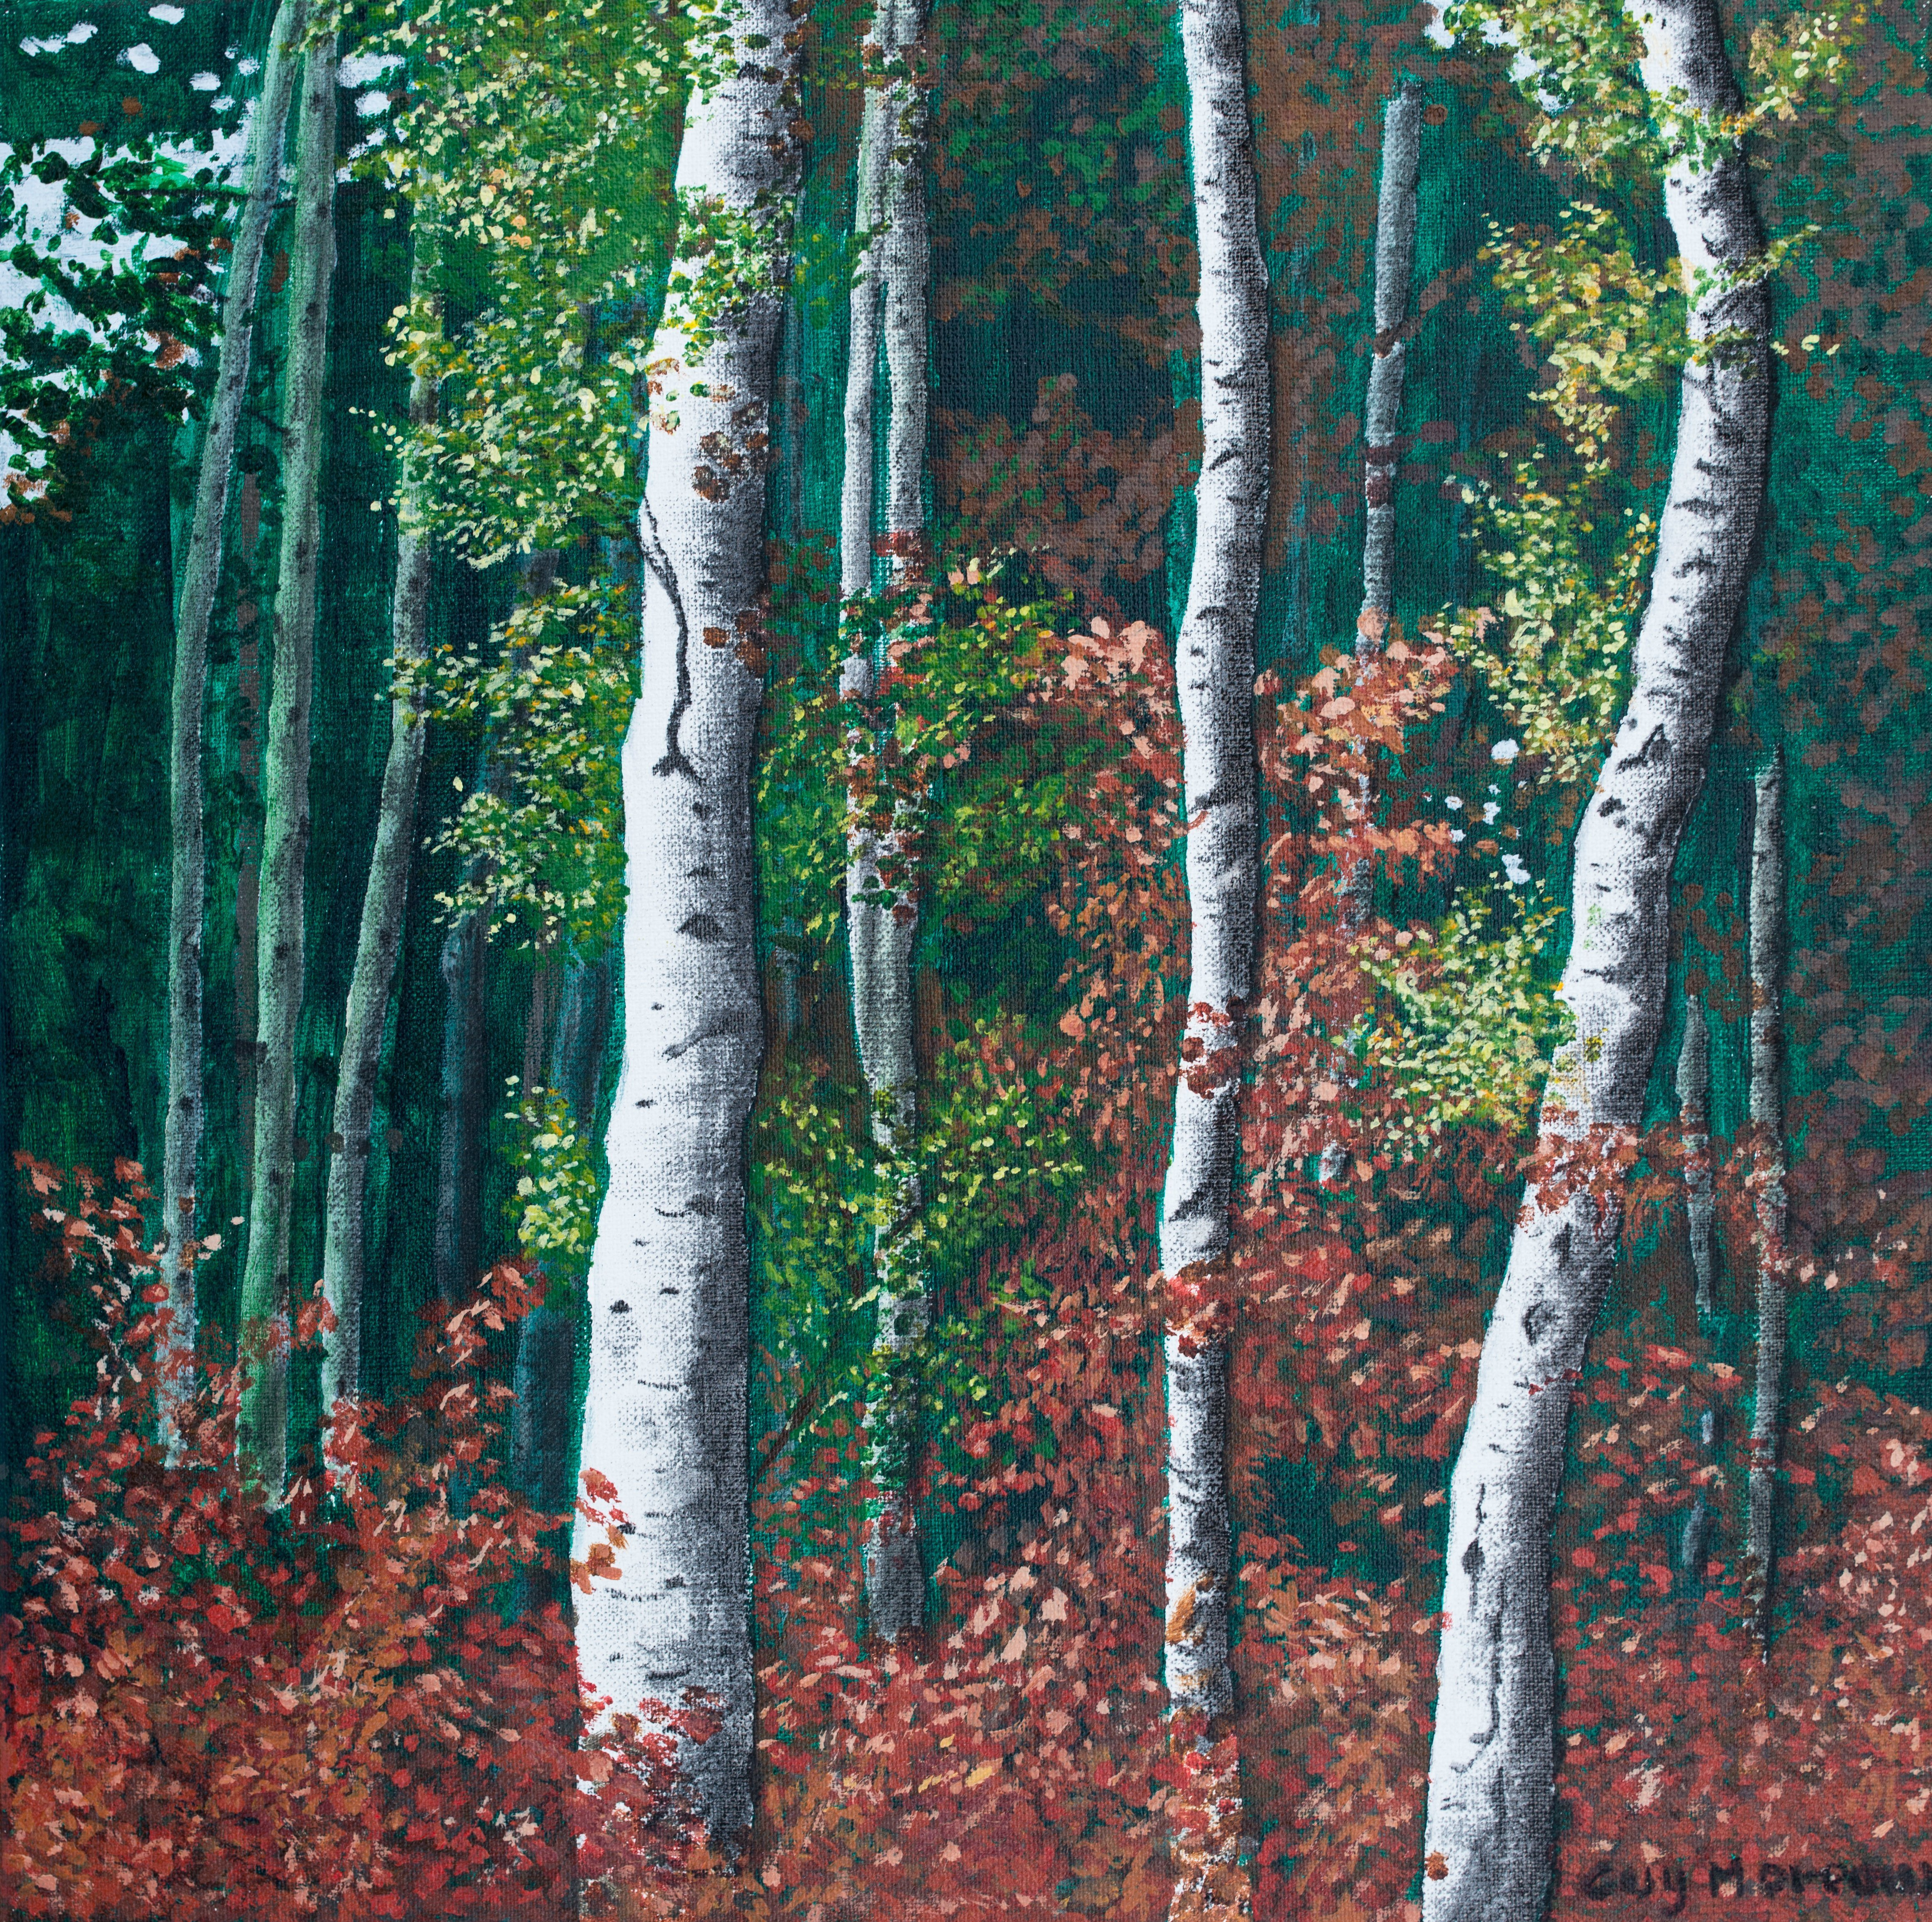 Guy Octaaf Moreaux; Early Autumn In Limburg, 2017, Original Painting Acrylic, 40 x 40 cm. Artwork description: 241 Acrylic and carbon on linen.Nature keeps inspiring me. Limburg province has a sand- rich soil which gives a variety of treespines are mixed in with others. ...